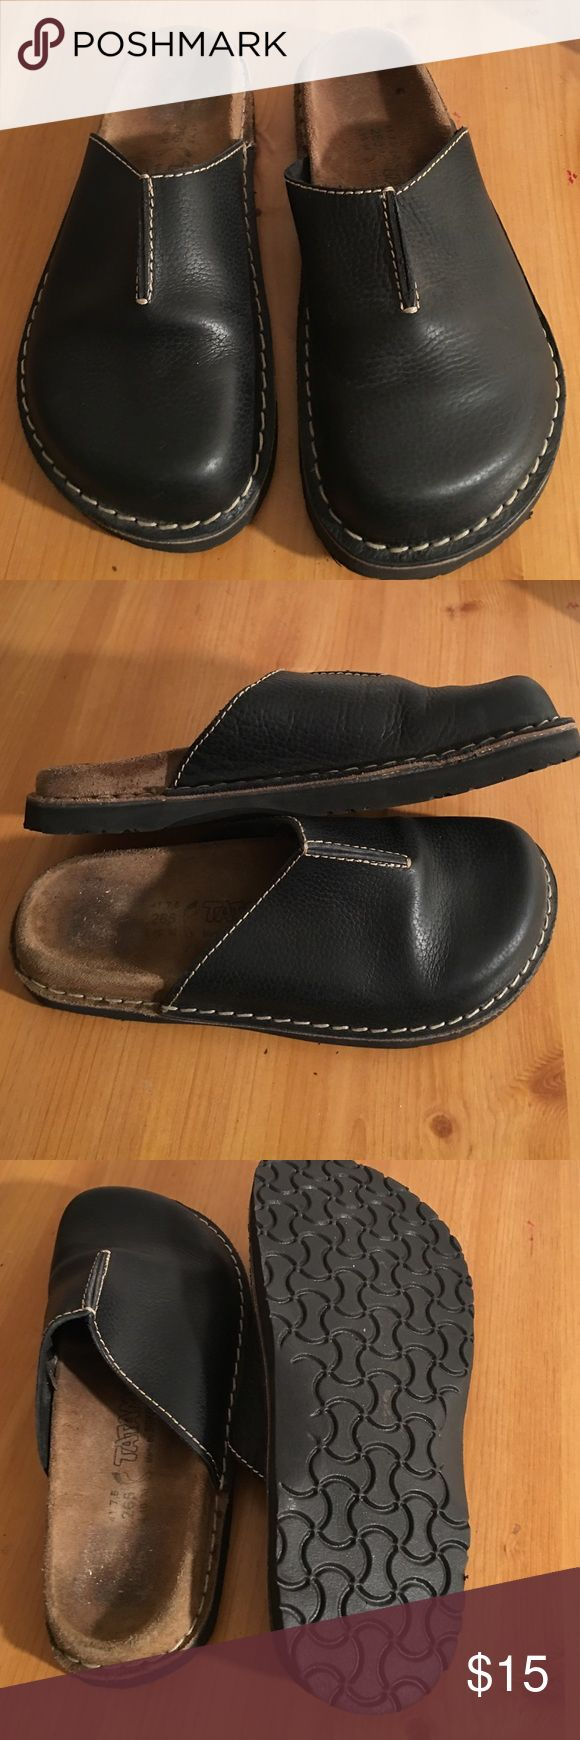 BIRKENSTOCK LEATHER CLOSED TOE SHOES SIZE 10 VGC PREOWNED BARELY WORN VERY GOOC CONDITION BIRKENSTOCK TATAMI CLOSED TOE SHOES GOOD STRONG LEATHER PEBBLE GRAIN SIZE LADIES 10 BIRKENSTOCK Shoes Mules & Clogs